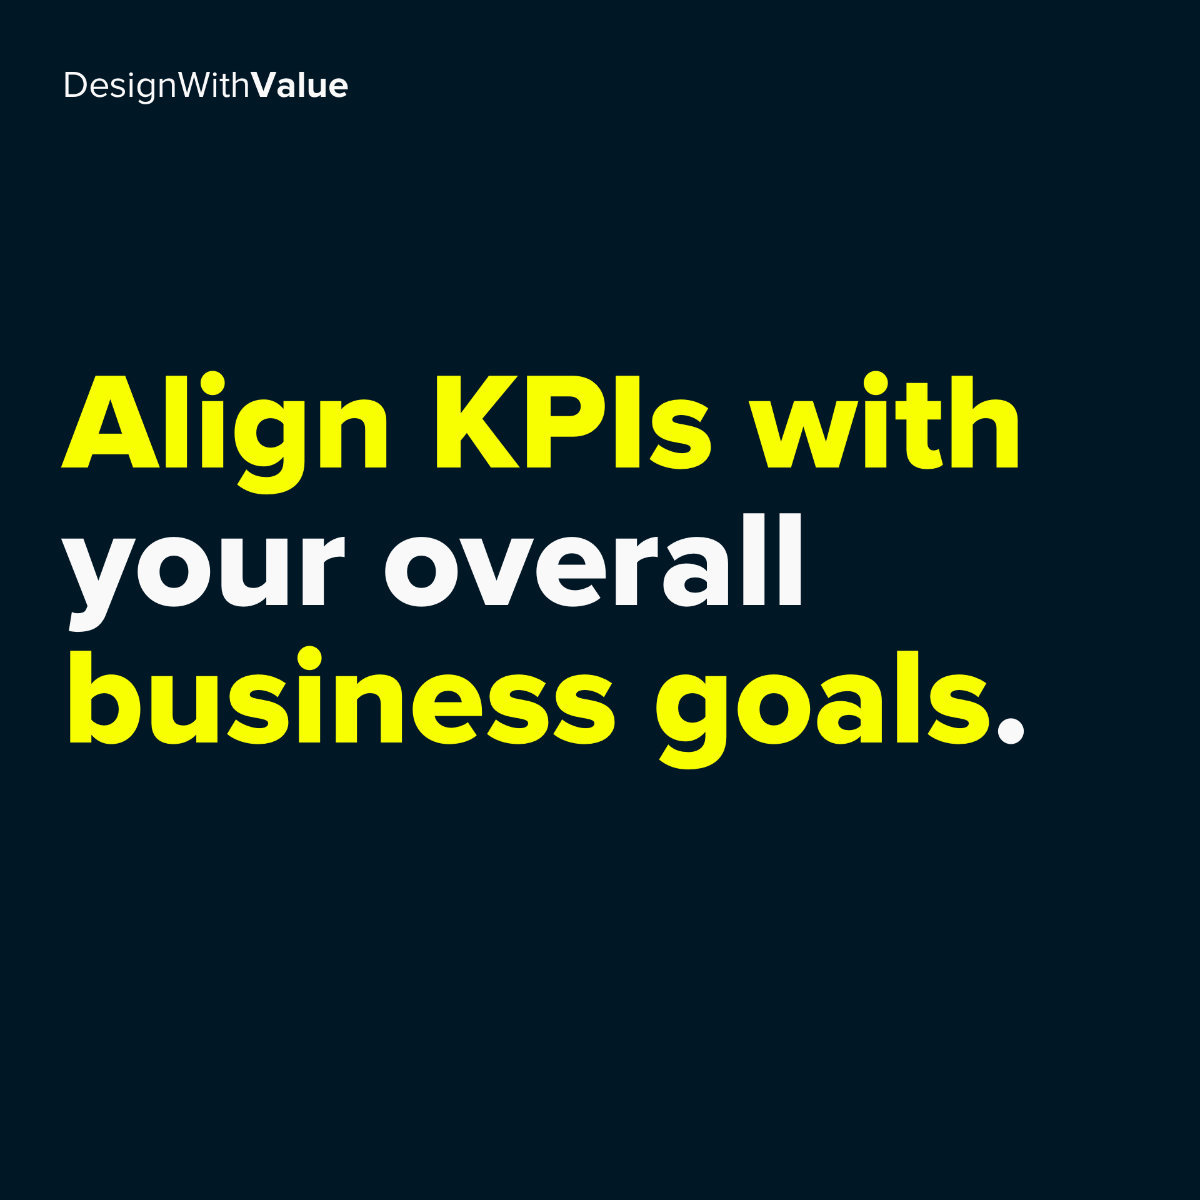 Align kpis with your overall business goals